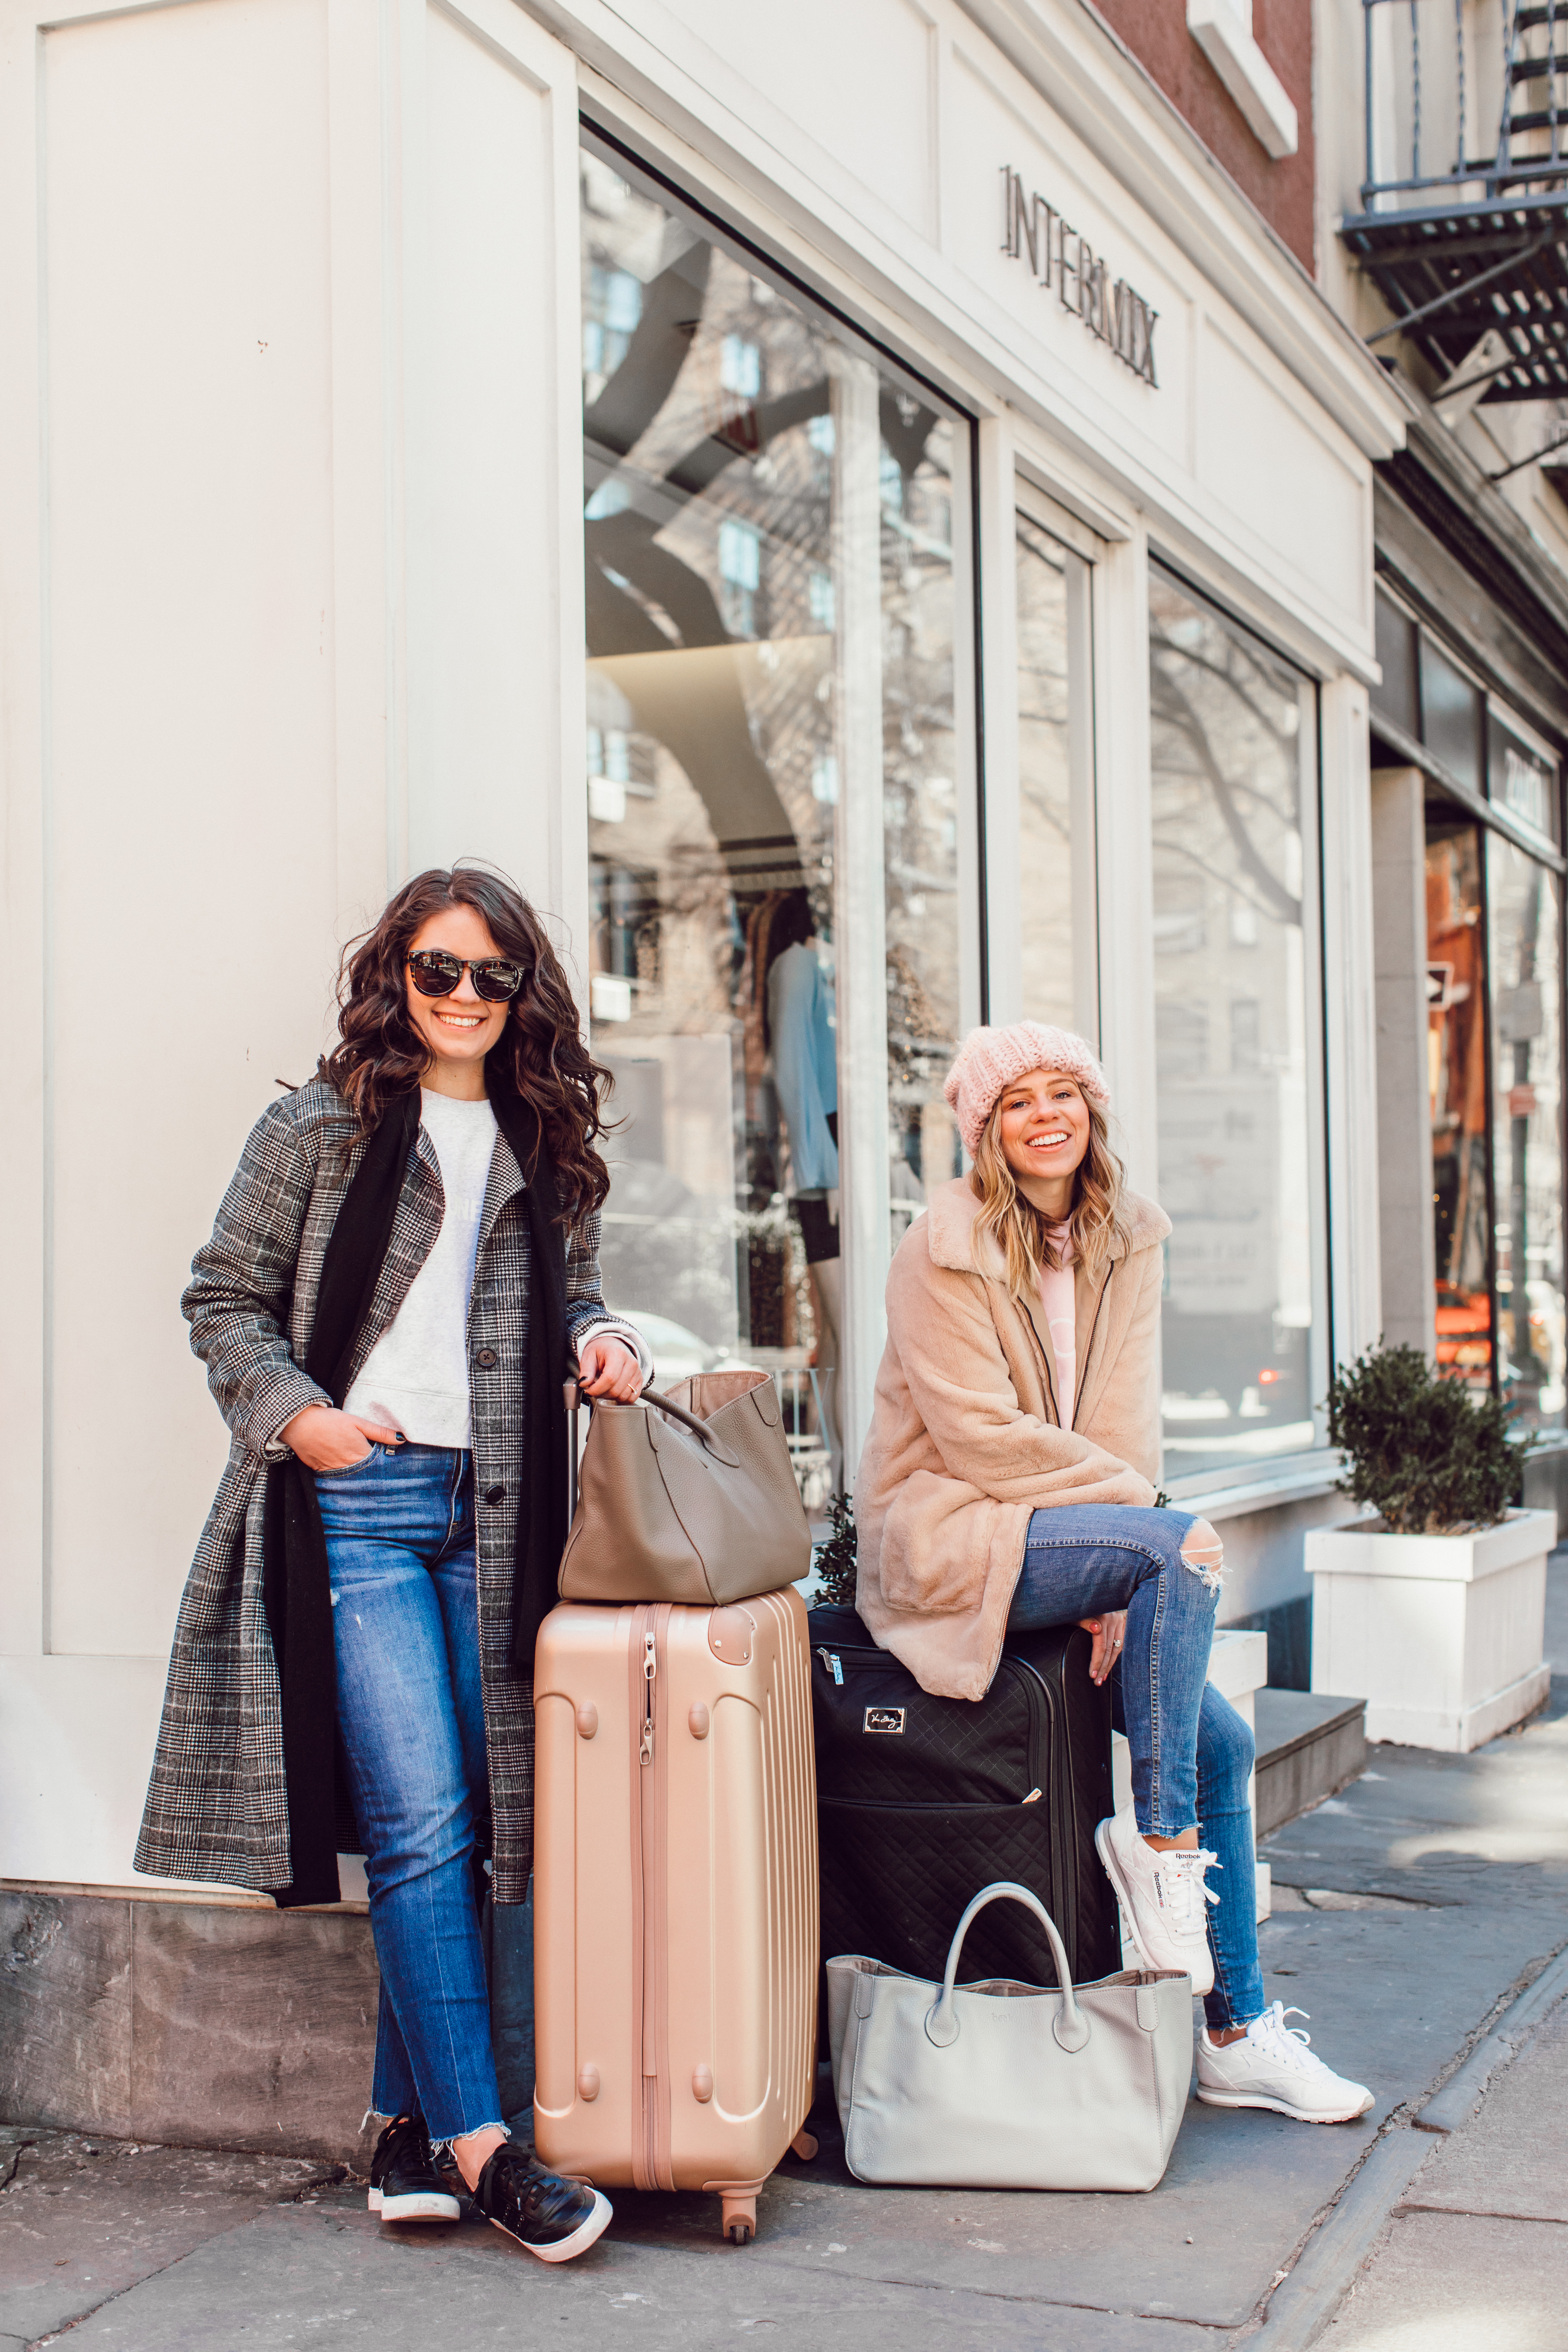 Winter Travel Style, Comfy Travel Style - NYFW Packing Tips and Recommendations featured by popular NC fashion blogger Laura Leigh of Louella Reese